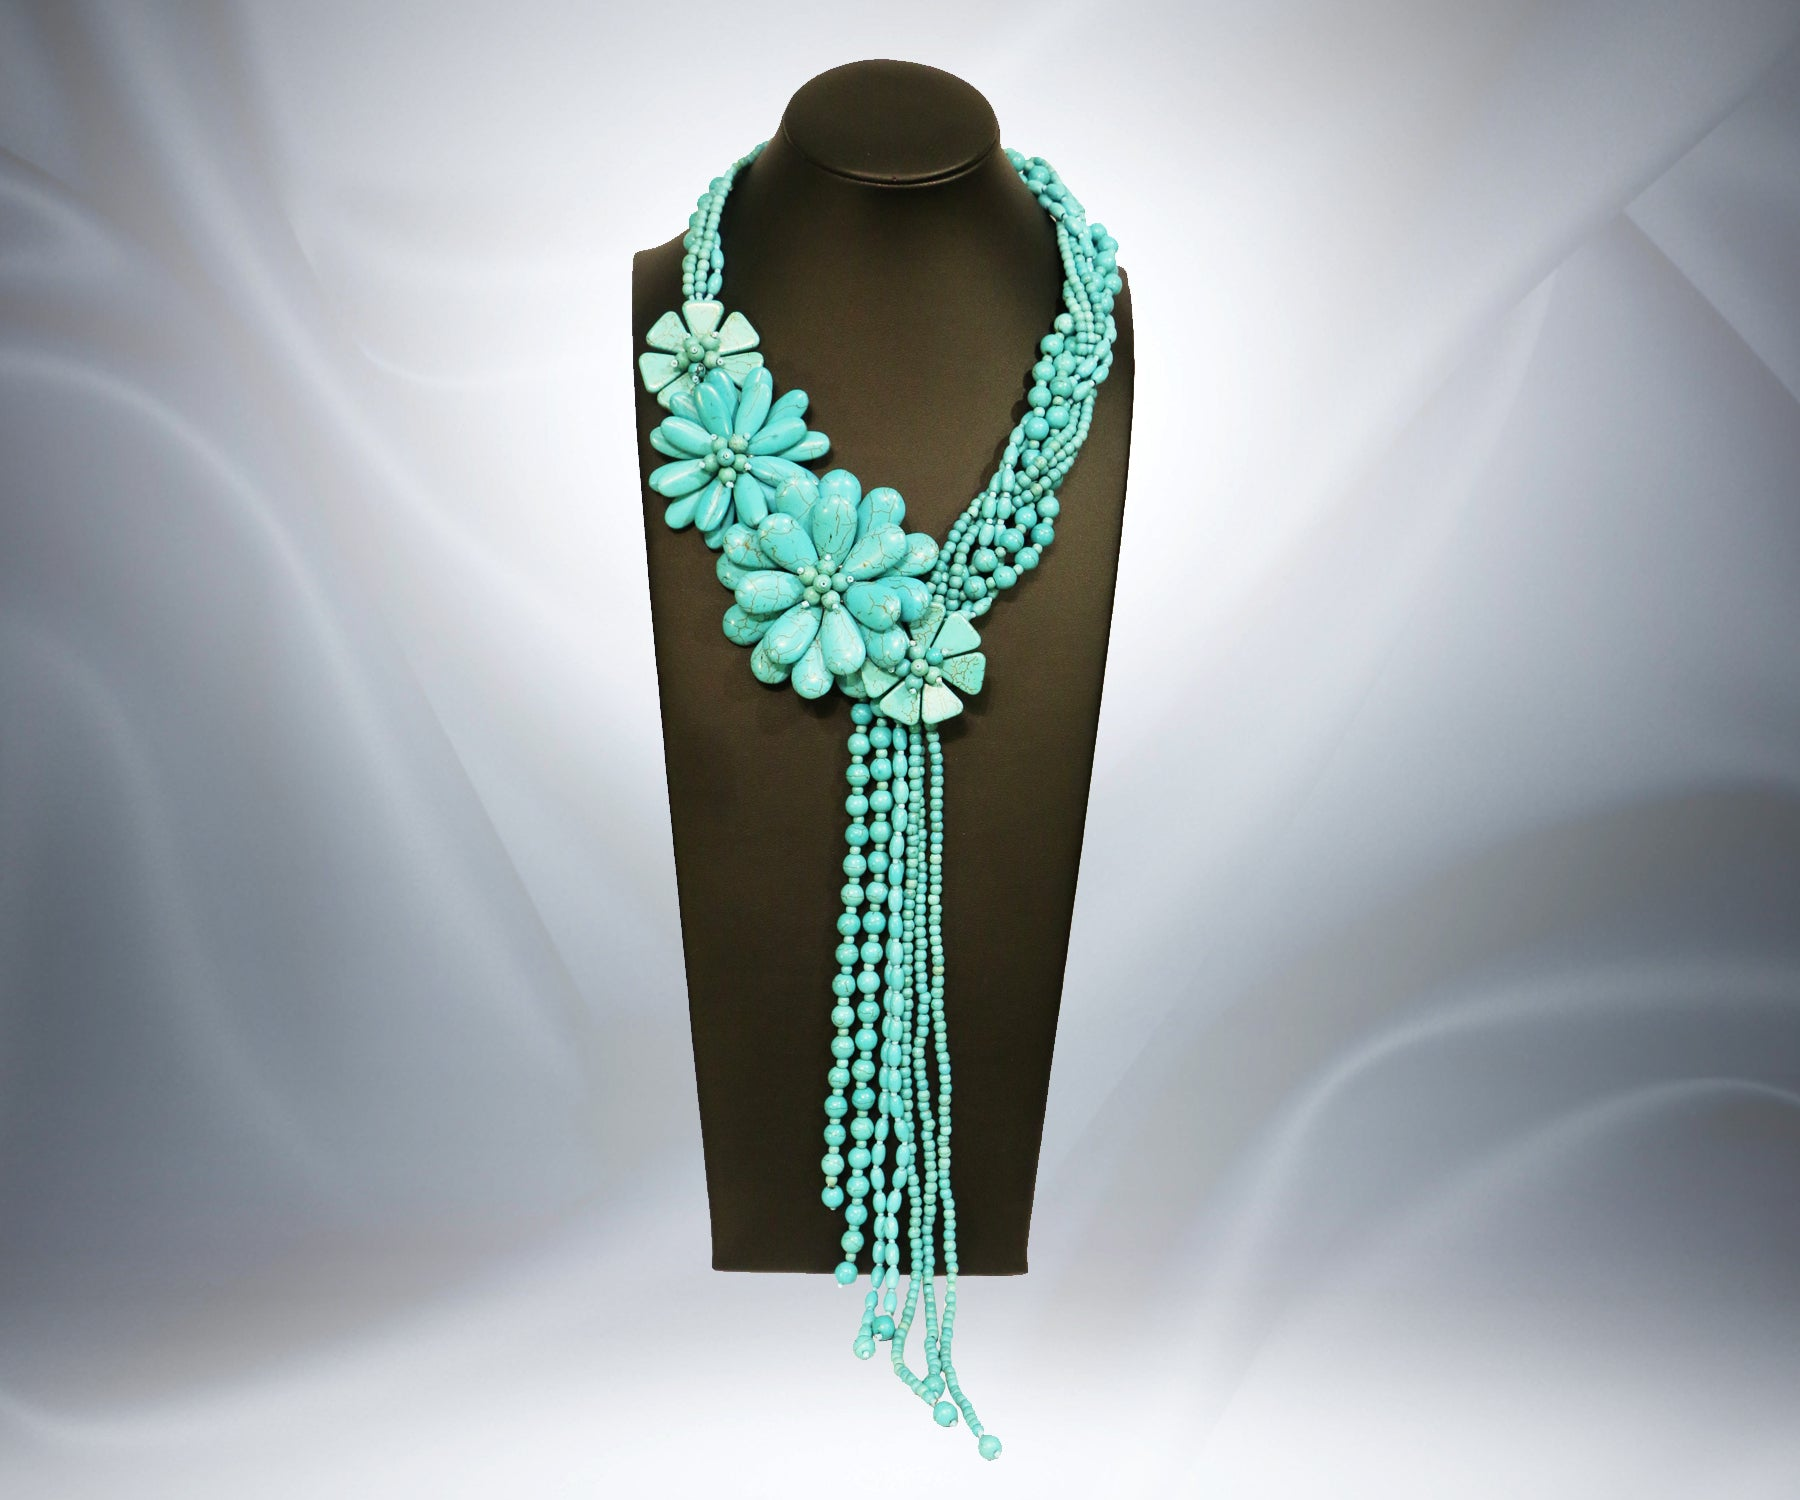 Turquoise Stone Flower Necklace - Tibet Arts & Healing